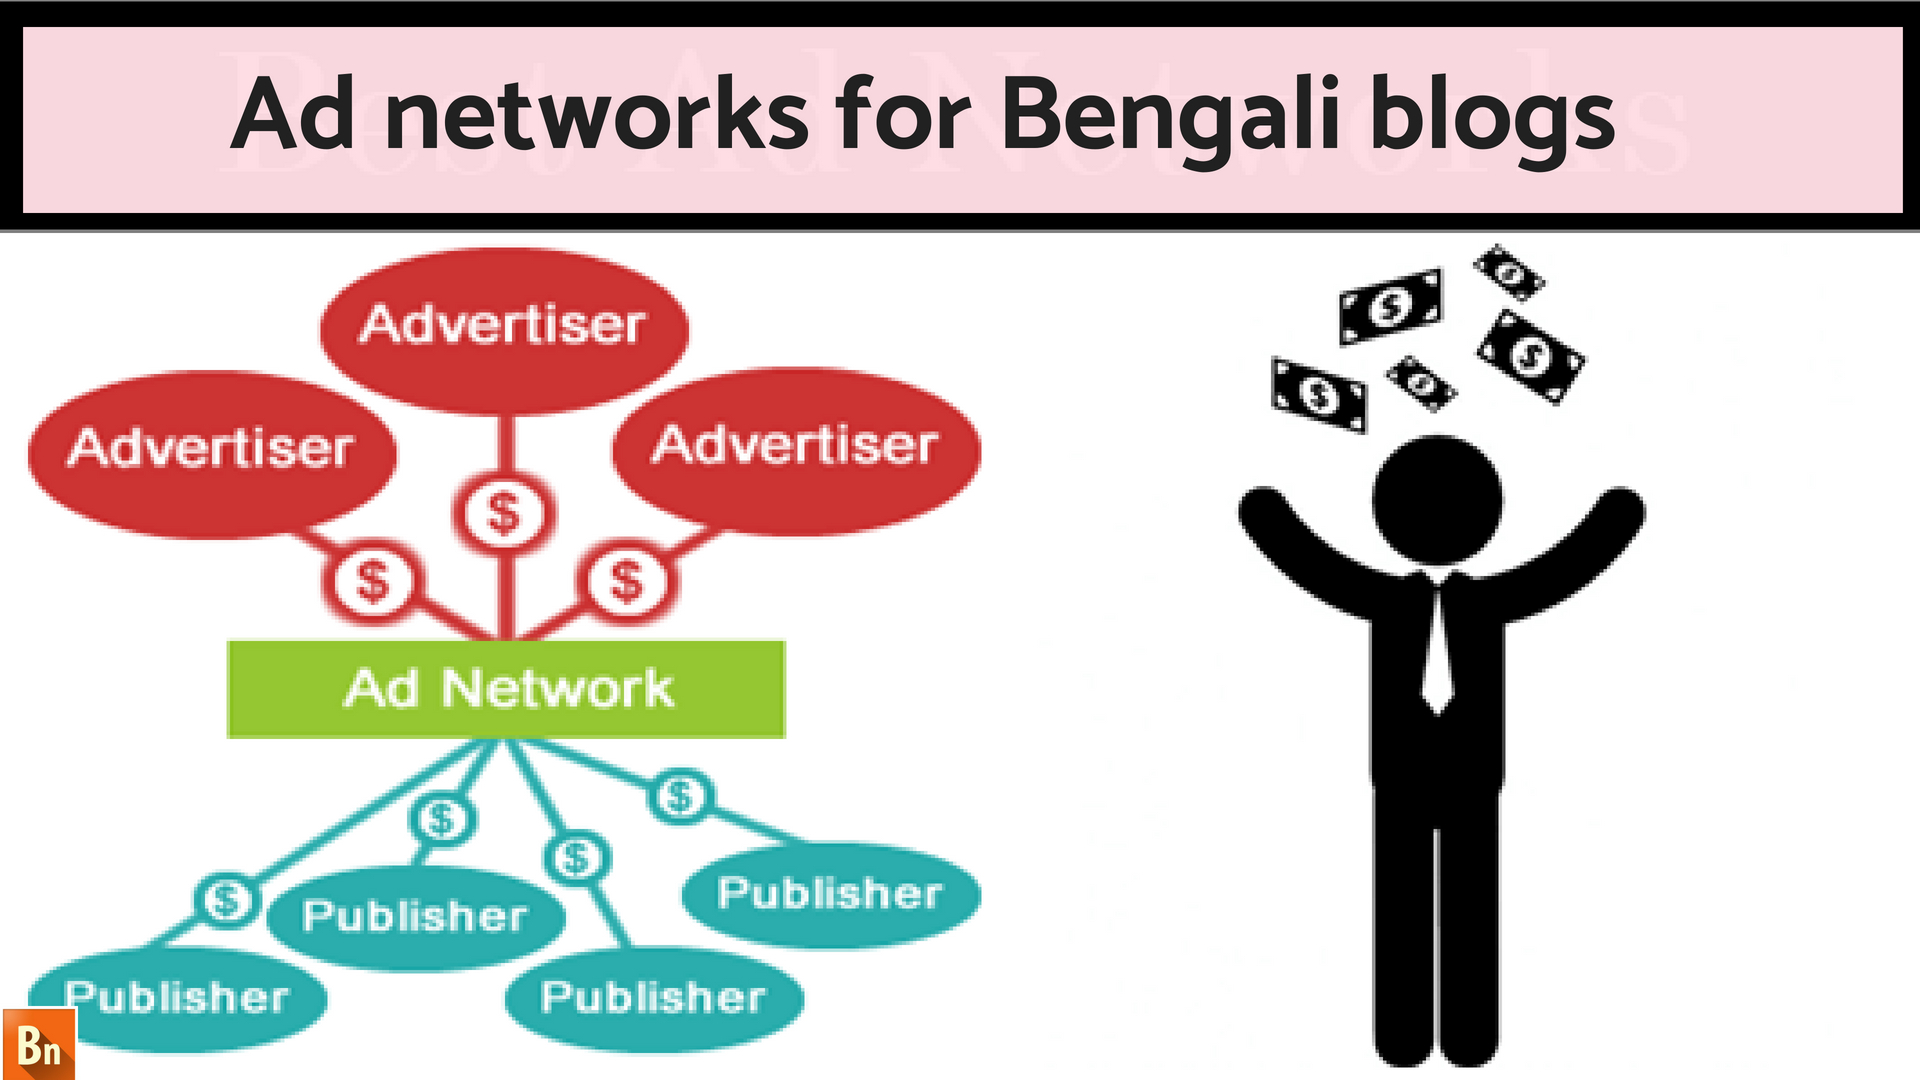 Best Ad Networks for Bengali Blogs 2019